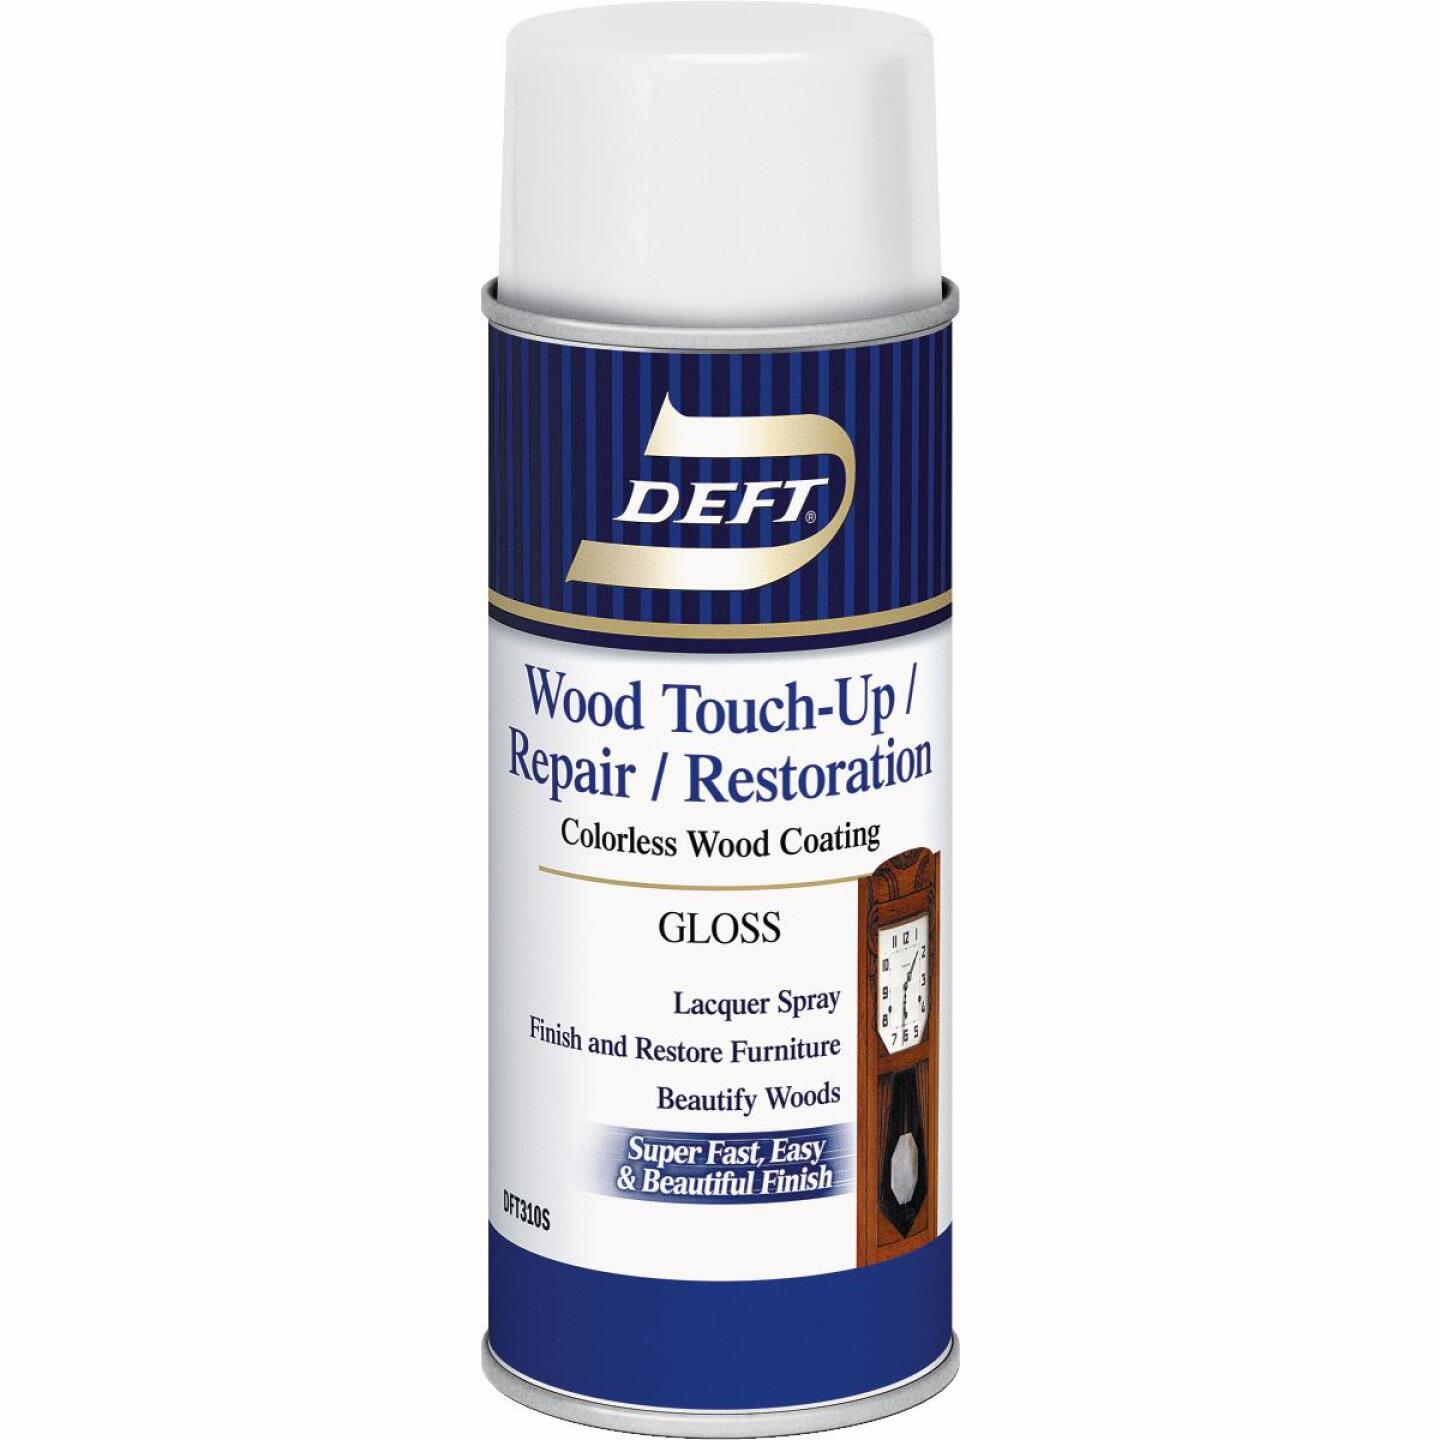 Deft VOC Compliant 12.25 Oz. Gloss Clear Wood Finish Interior Spray Lacquer Image 1